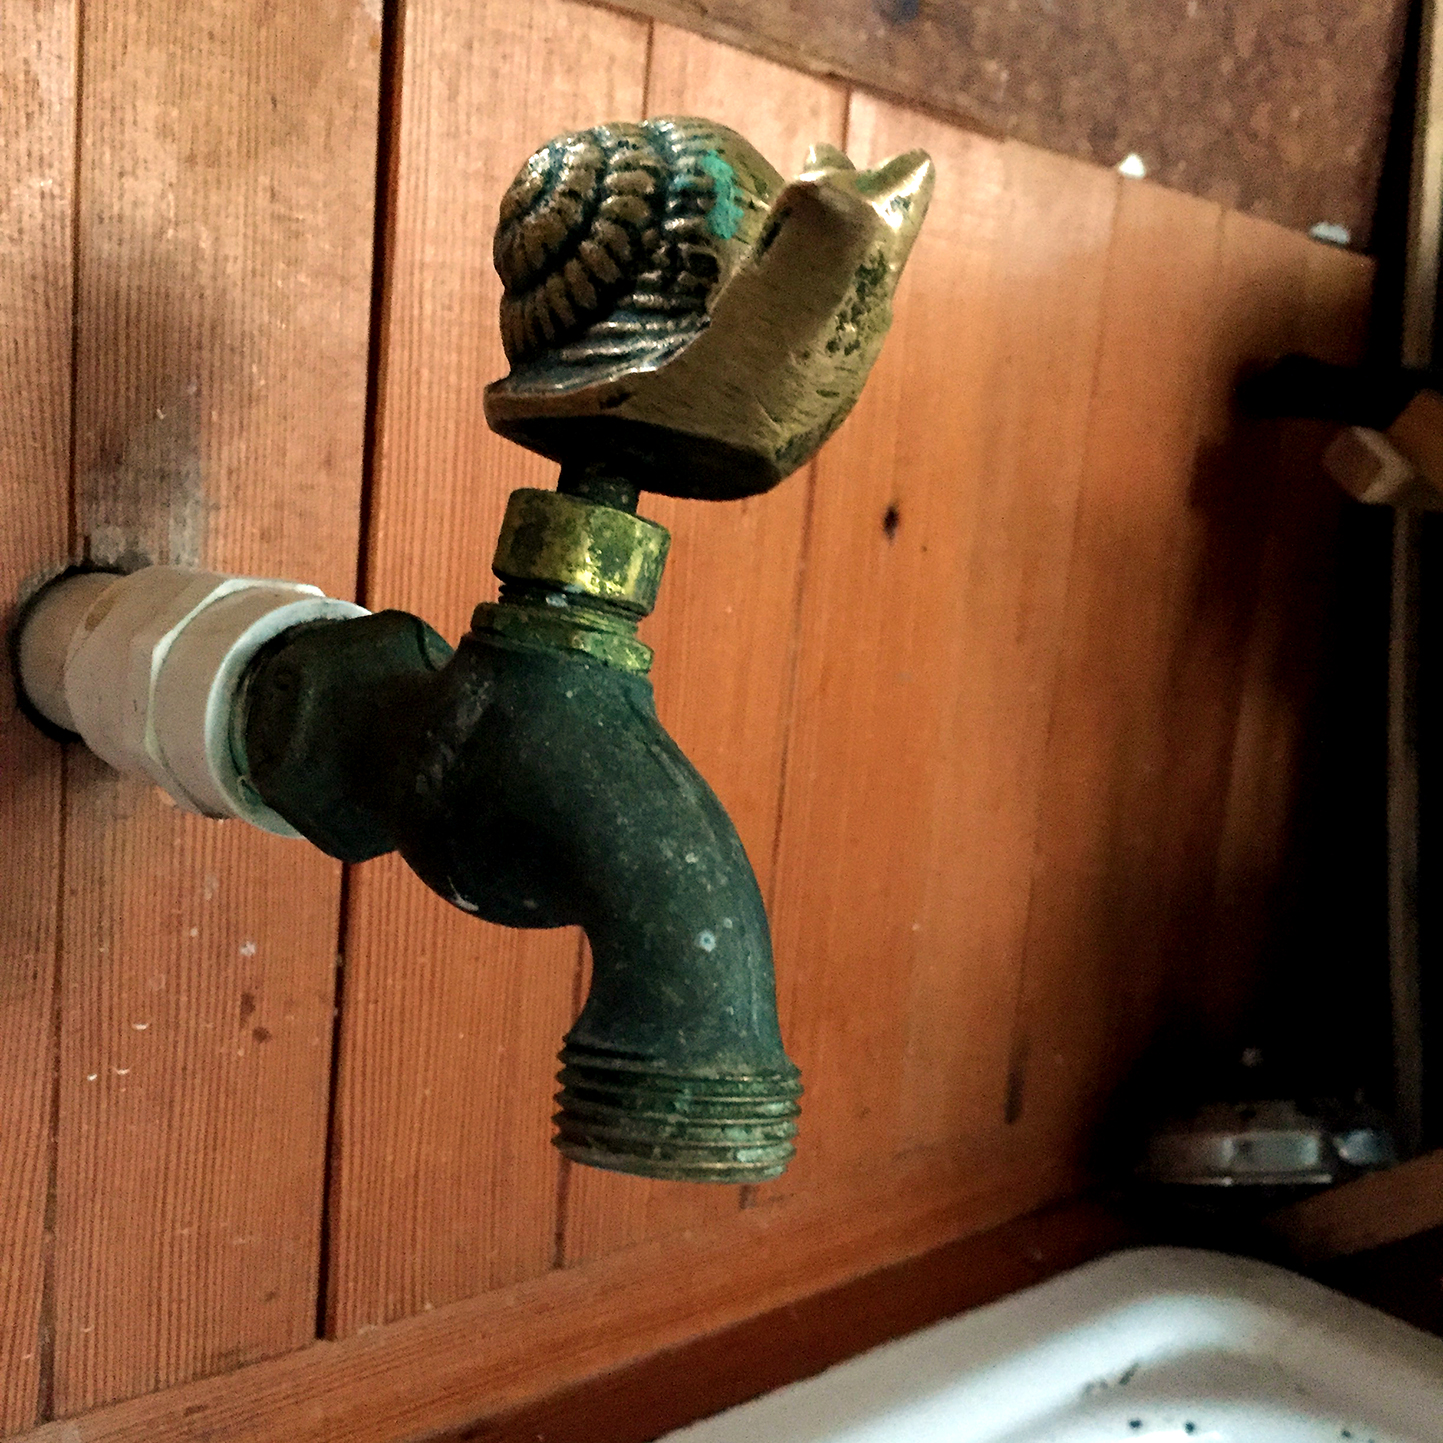 The cabin is equipped with only one water source. This single tap brings running water (pumped up from the bike) into the kitchen, allowing guests the convenience of washing hands and dishes inside.